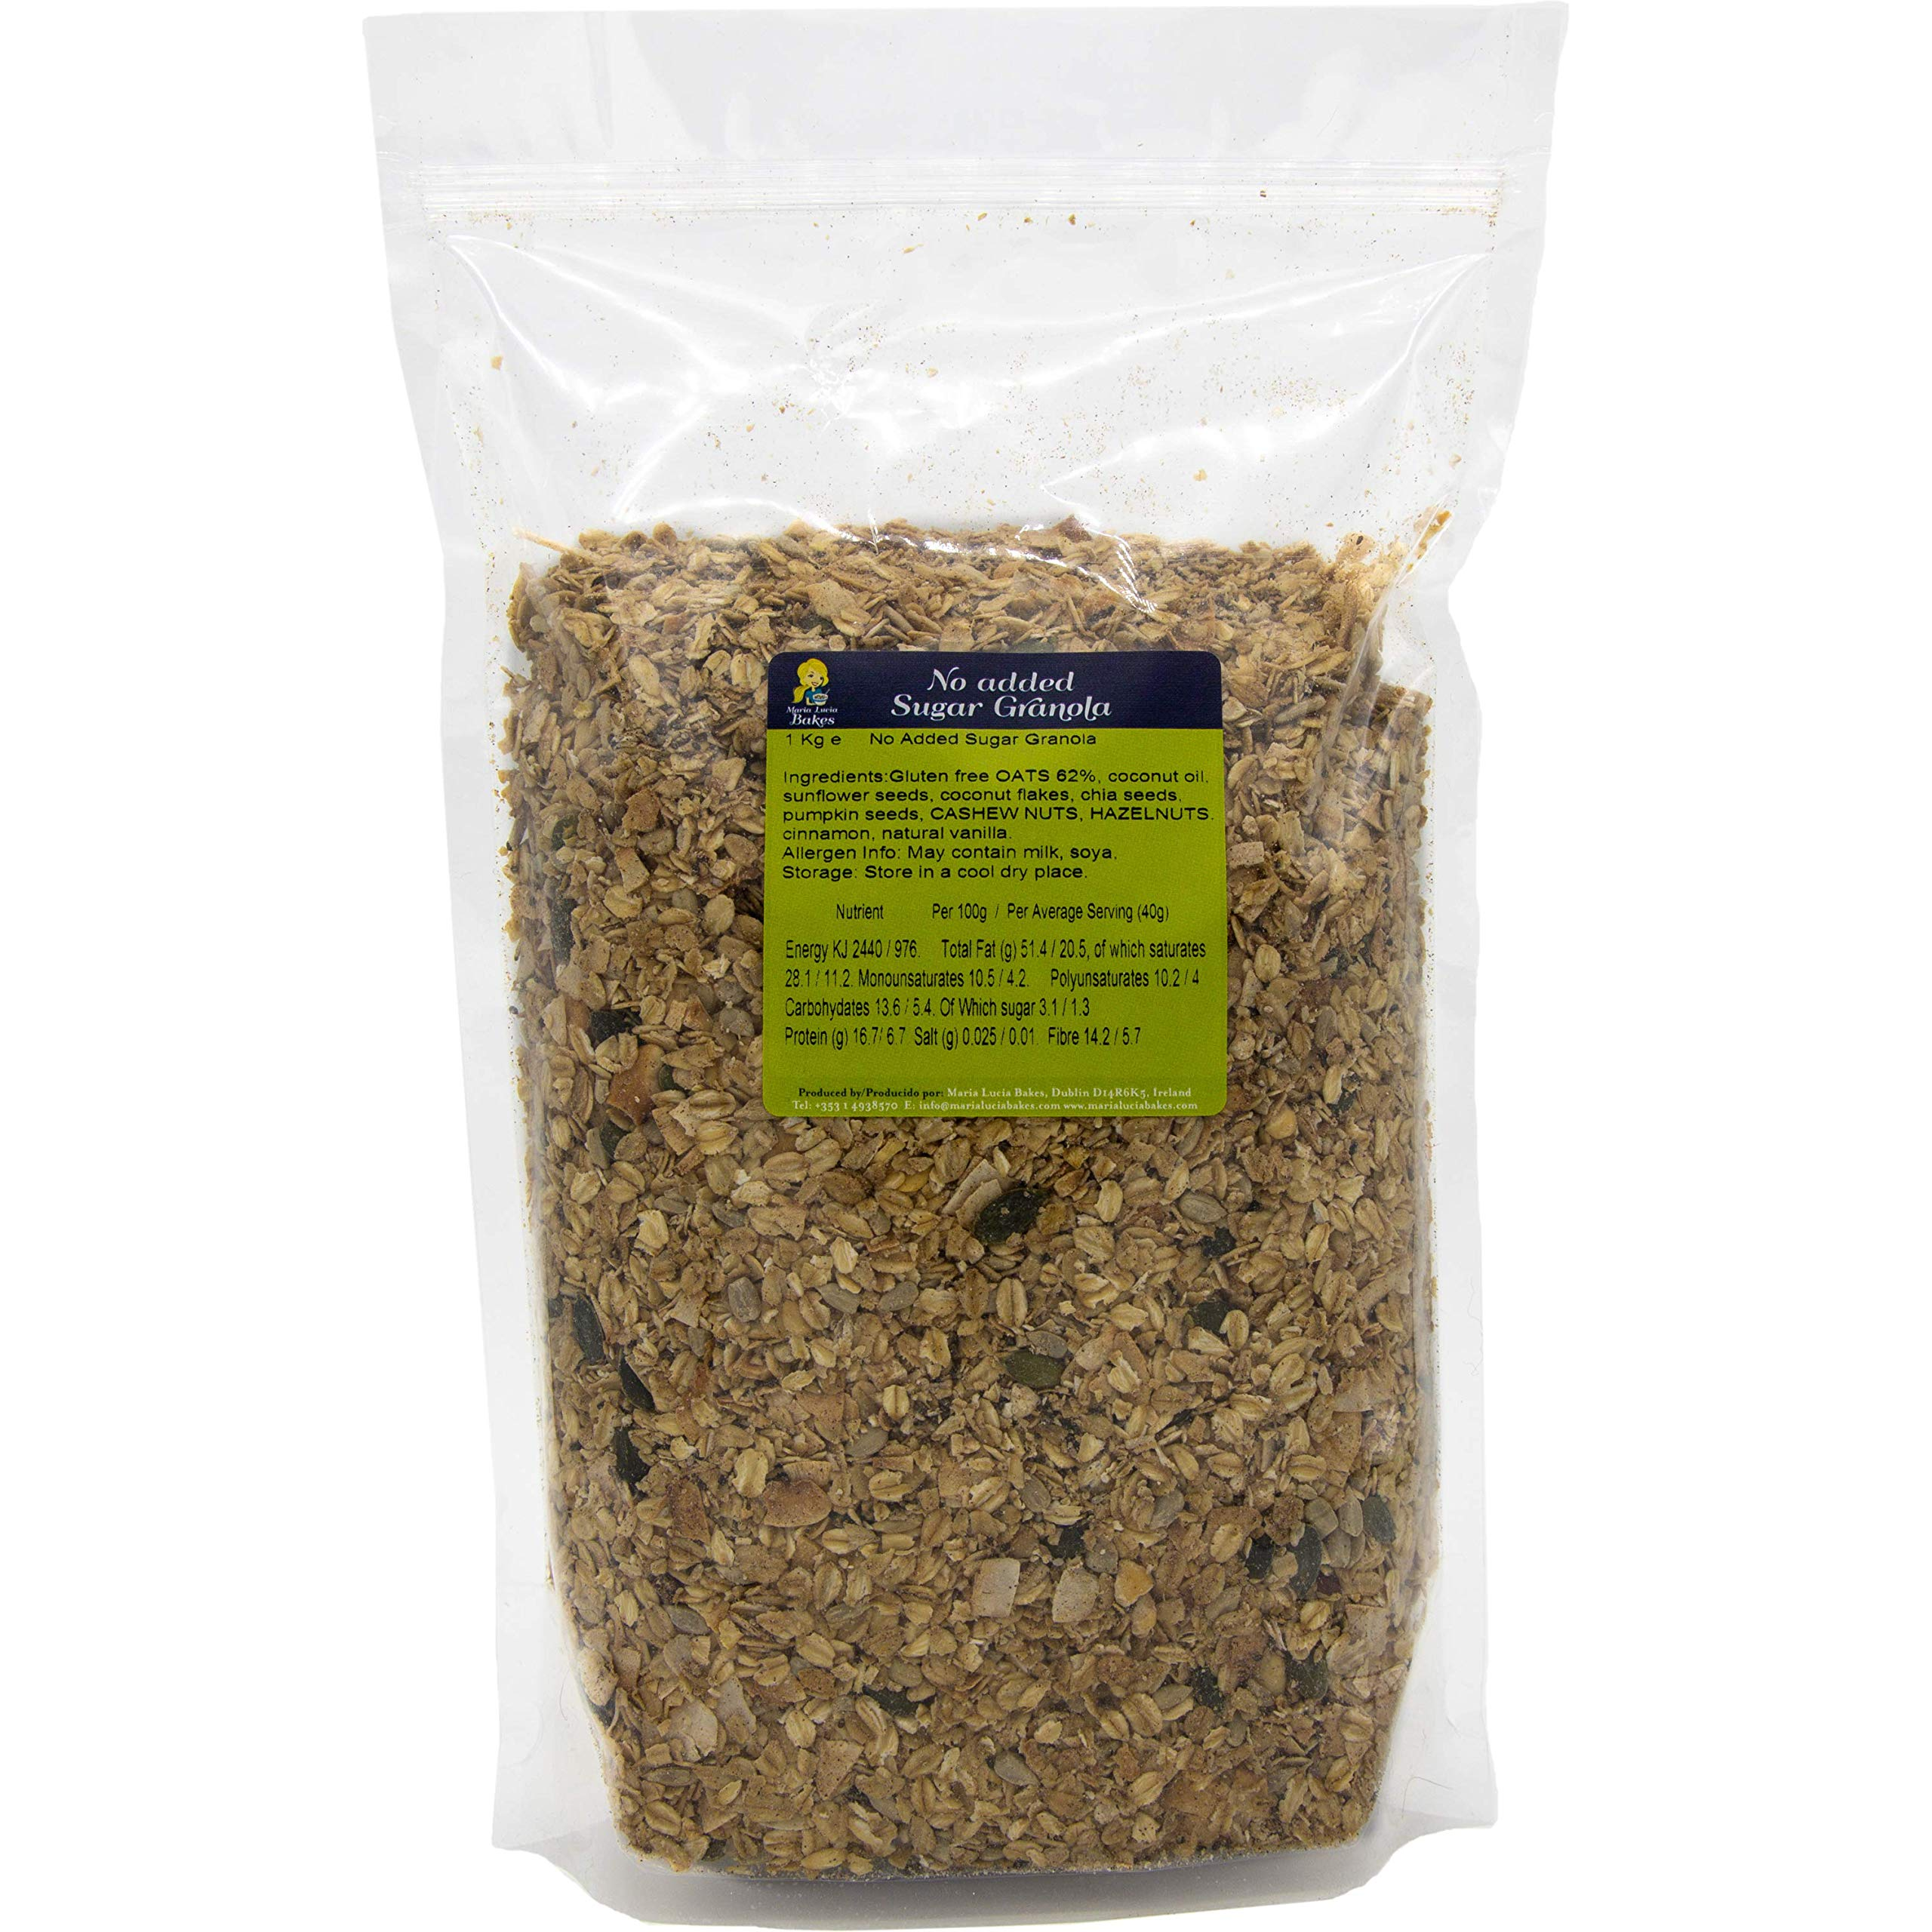 Granola with No Added Sugar 1kg Resealable Bulk Bag - No Gluten, Wheat or Dairy - Ideal for Diabetics - Healthy & Natural Breakfast Cereal - High in Fibre & Protein - by Maria Lucia Bakes